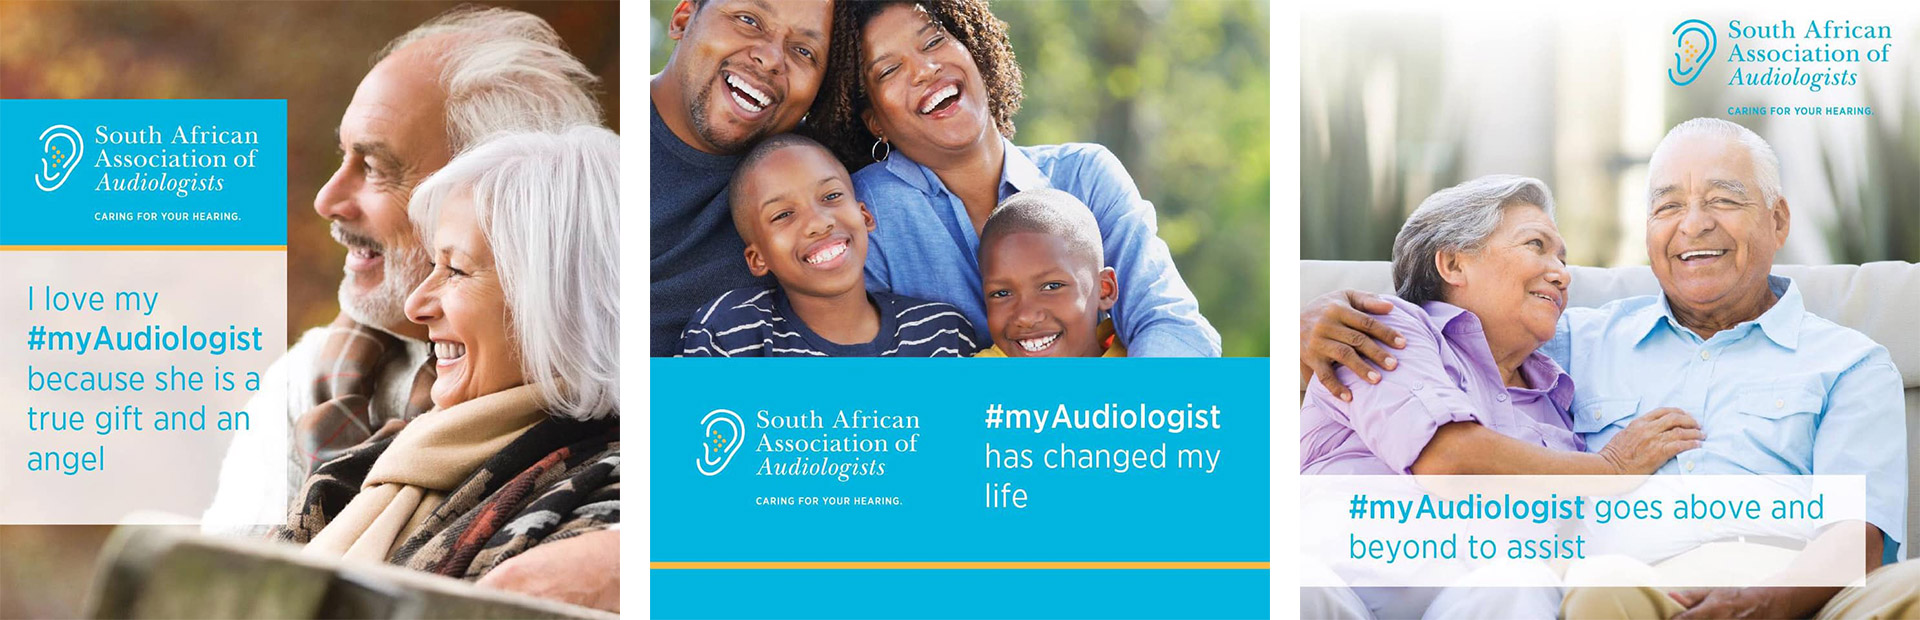 my-audiologist-testimonial-graphic-cvh-website